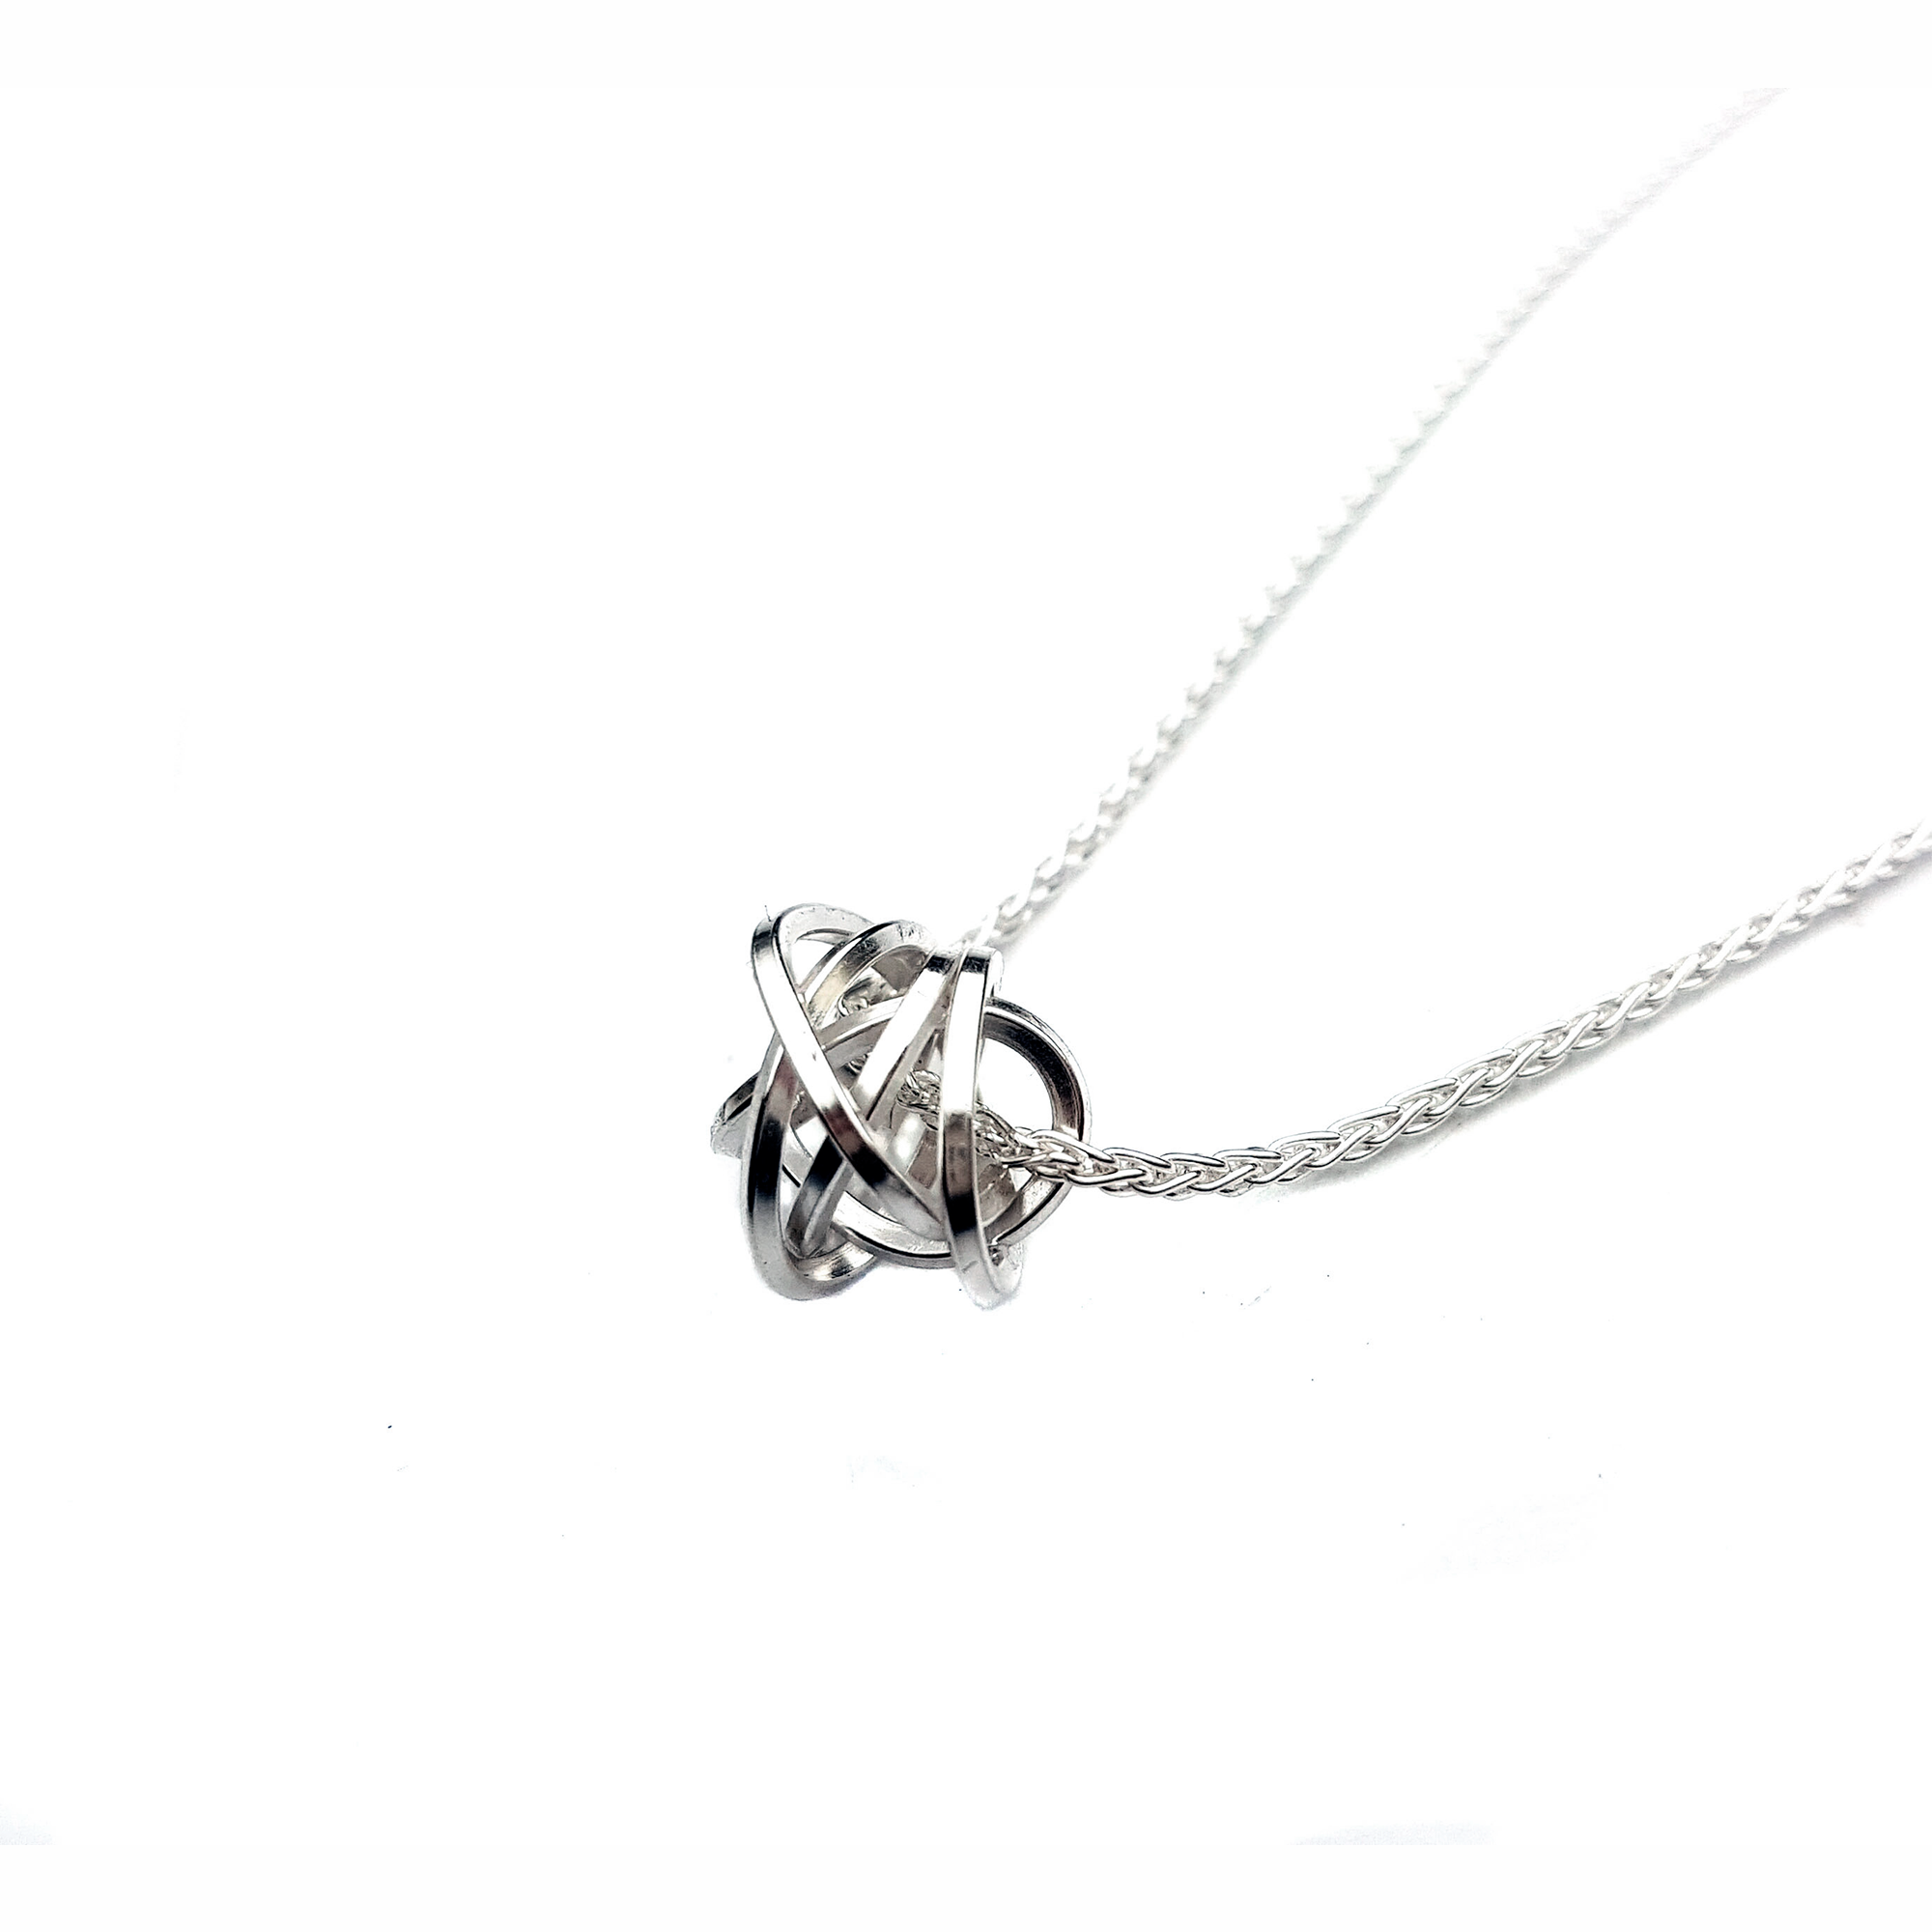 enlarged pendant knot me products necklaces endless glorious ro necklace and jewelry